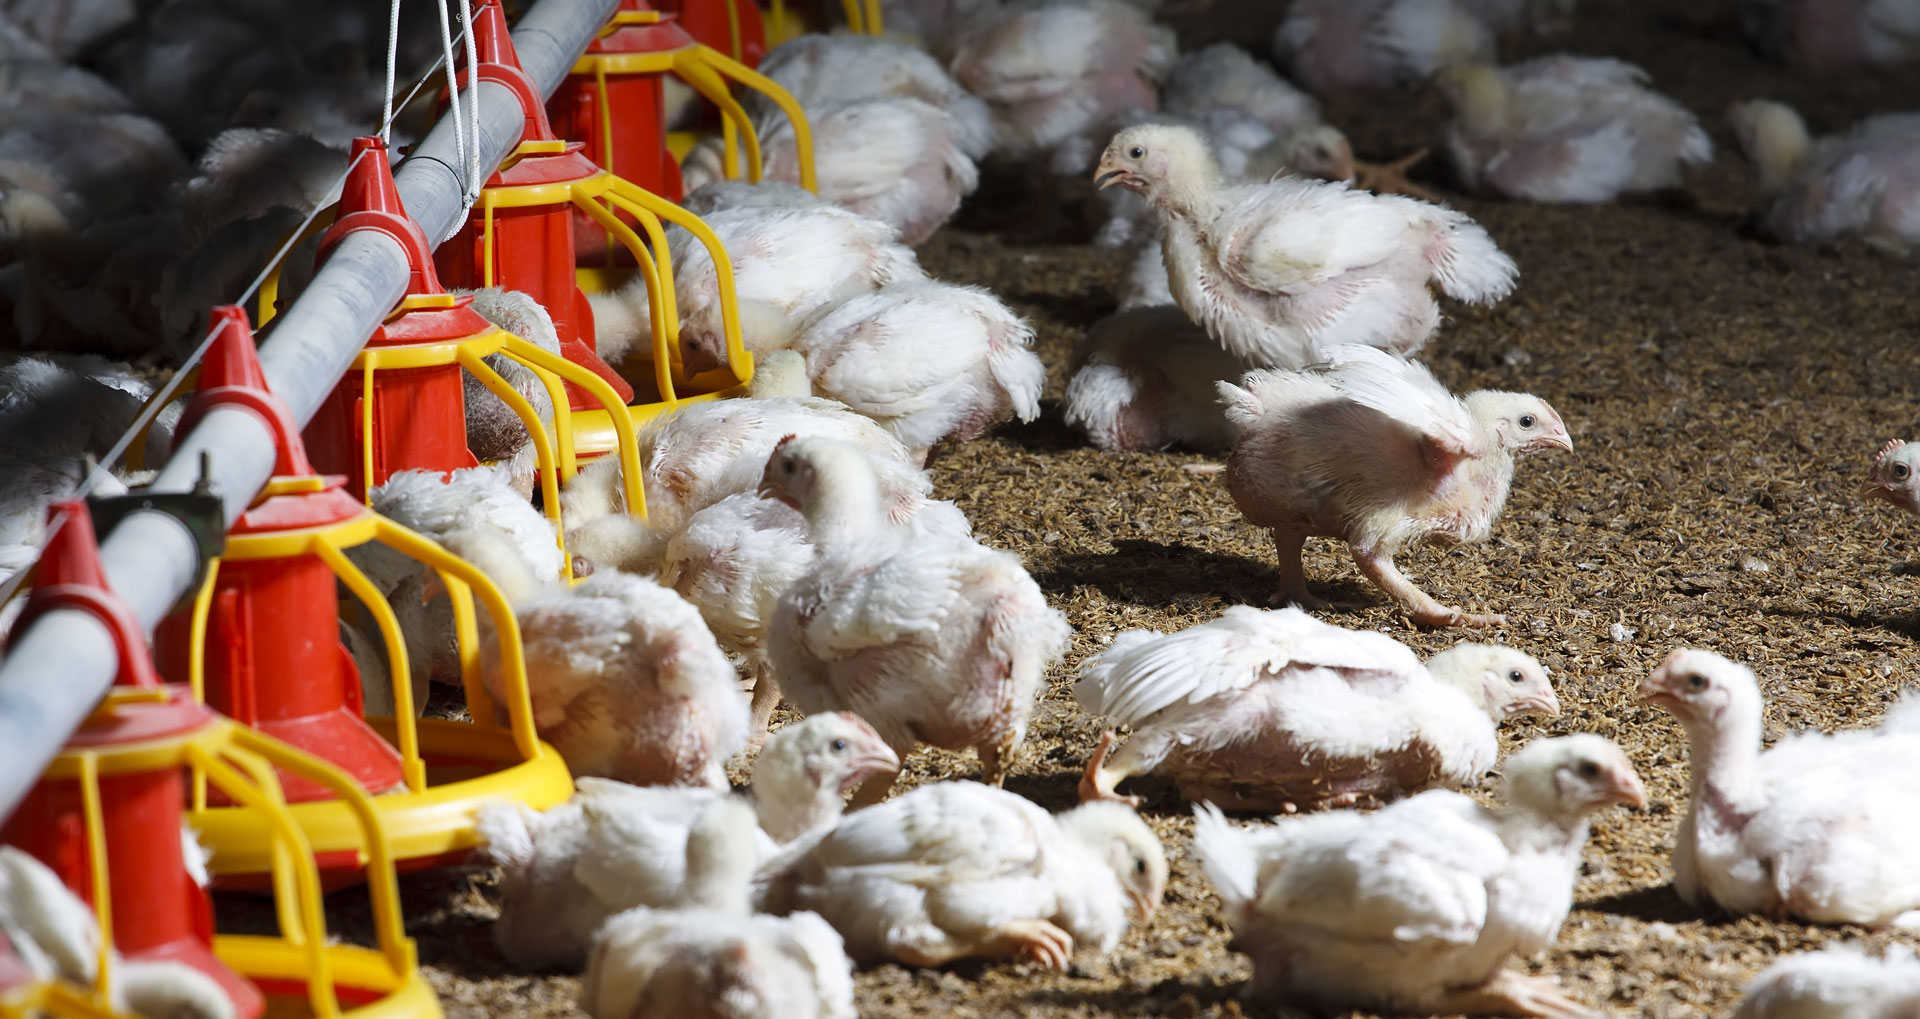 ag-gag laws prevent employees from reporting on poor conditions